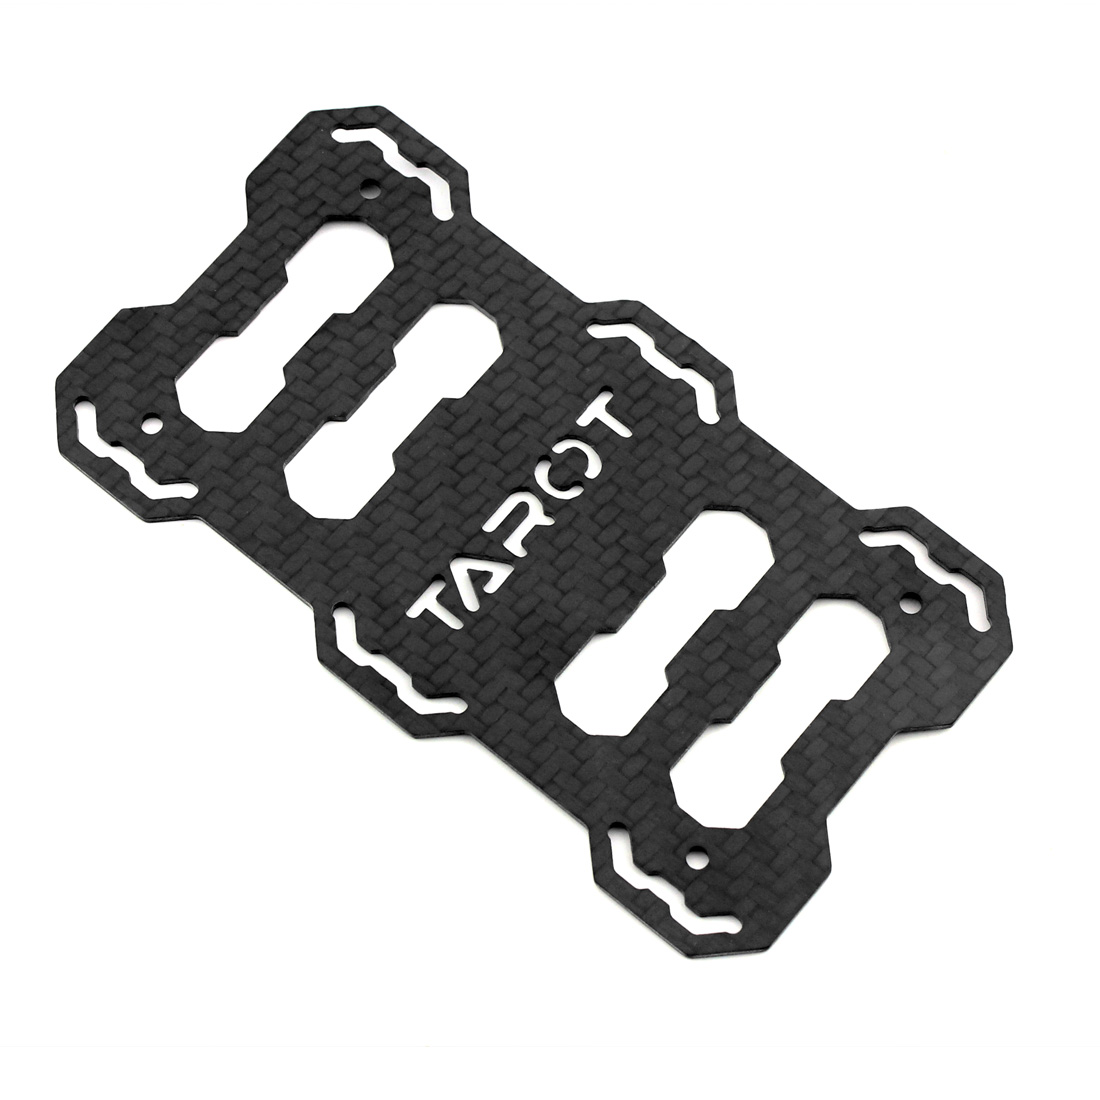 Tarot 3K Carbon Battery Mount Plate TL65B03 For FY 650 Folding Main Frame set Quadcopter in Parts Accessories from Toys Hobbies